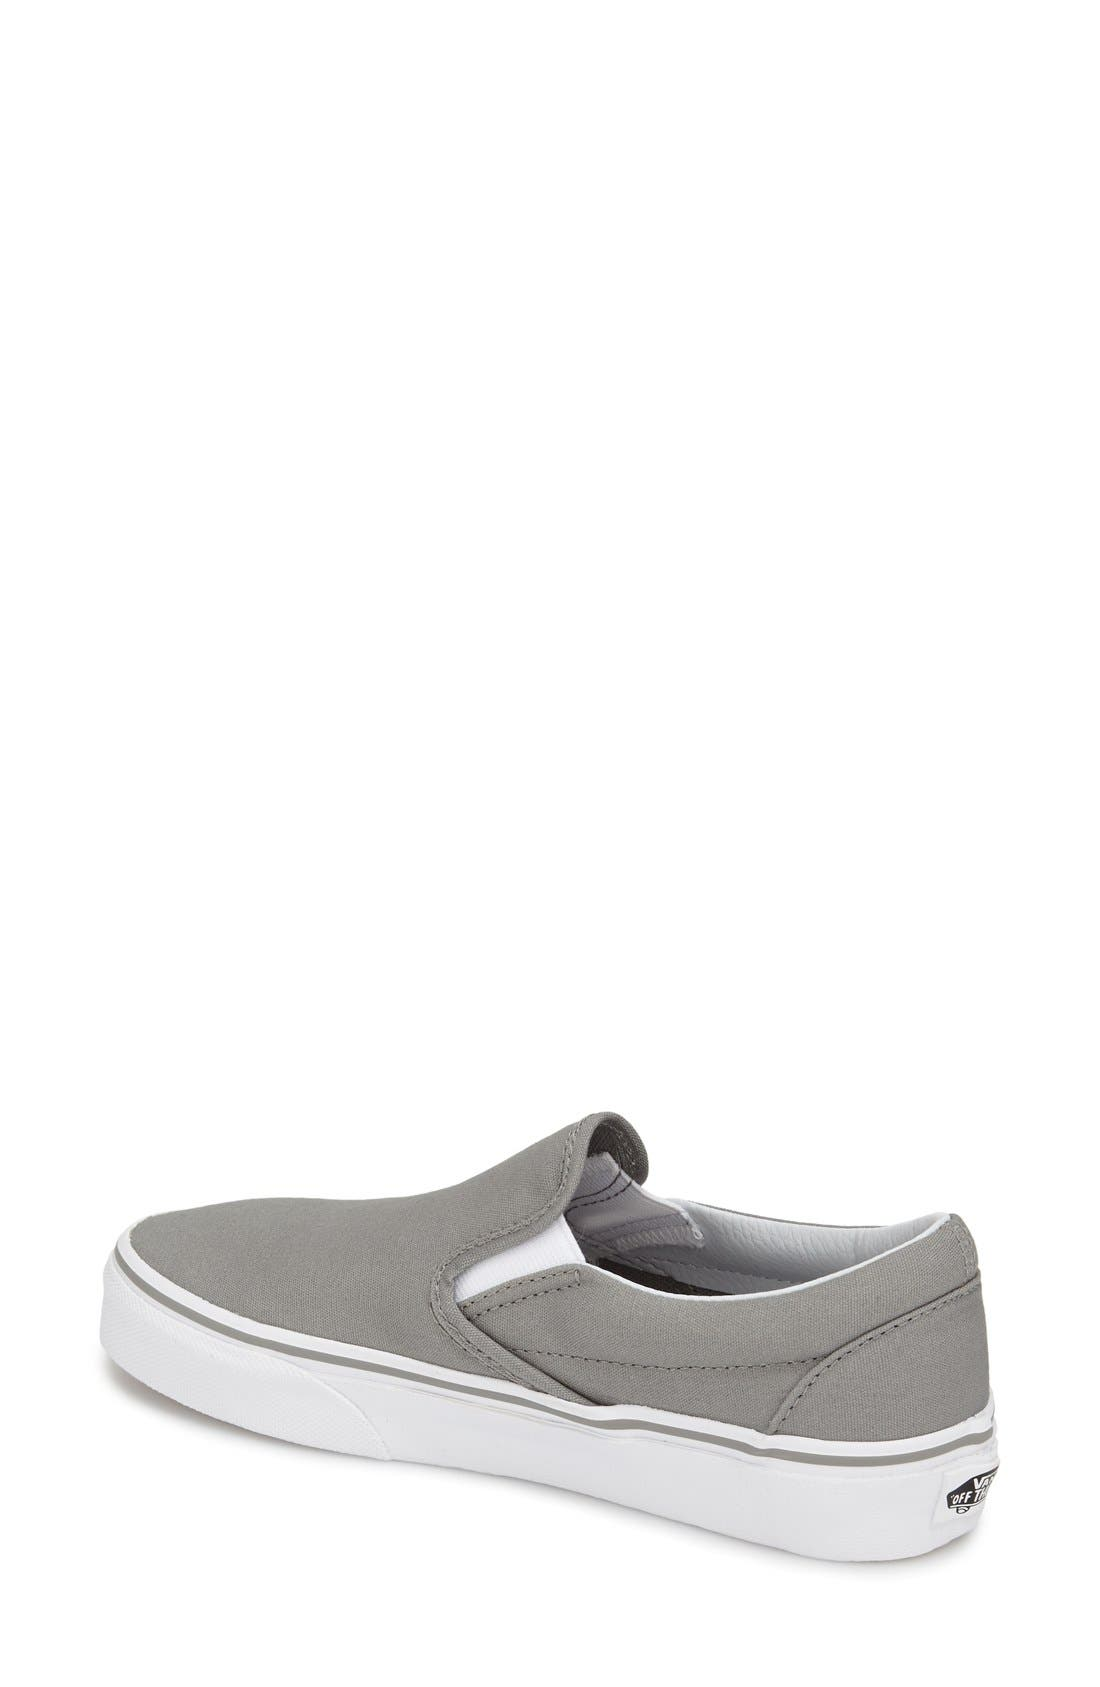 Classic Slip-On Sneaker,                             Alternate thumbnail 138, color,